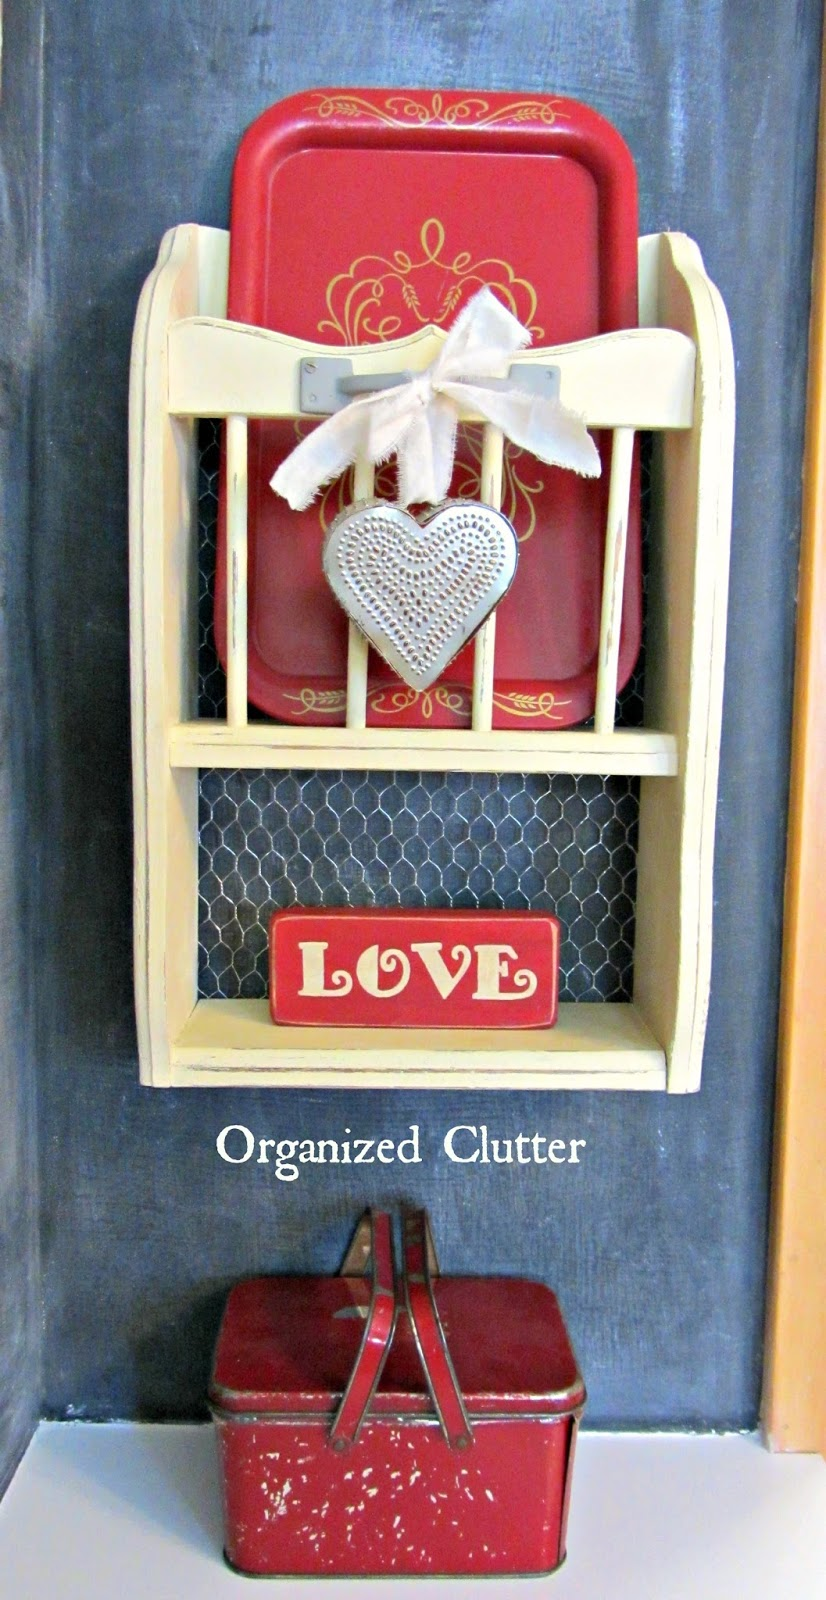 Salvaged Shelf Valentine's Day Decor www.organizedclutterqueen.blogspot.com